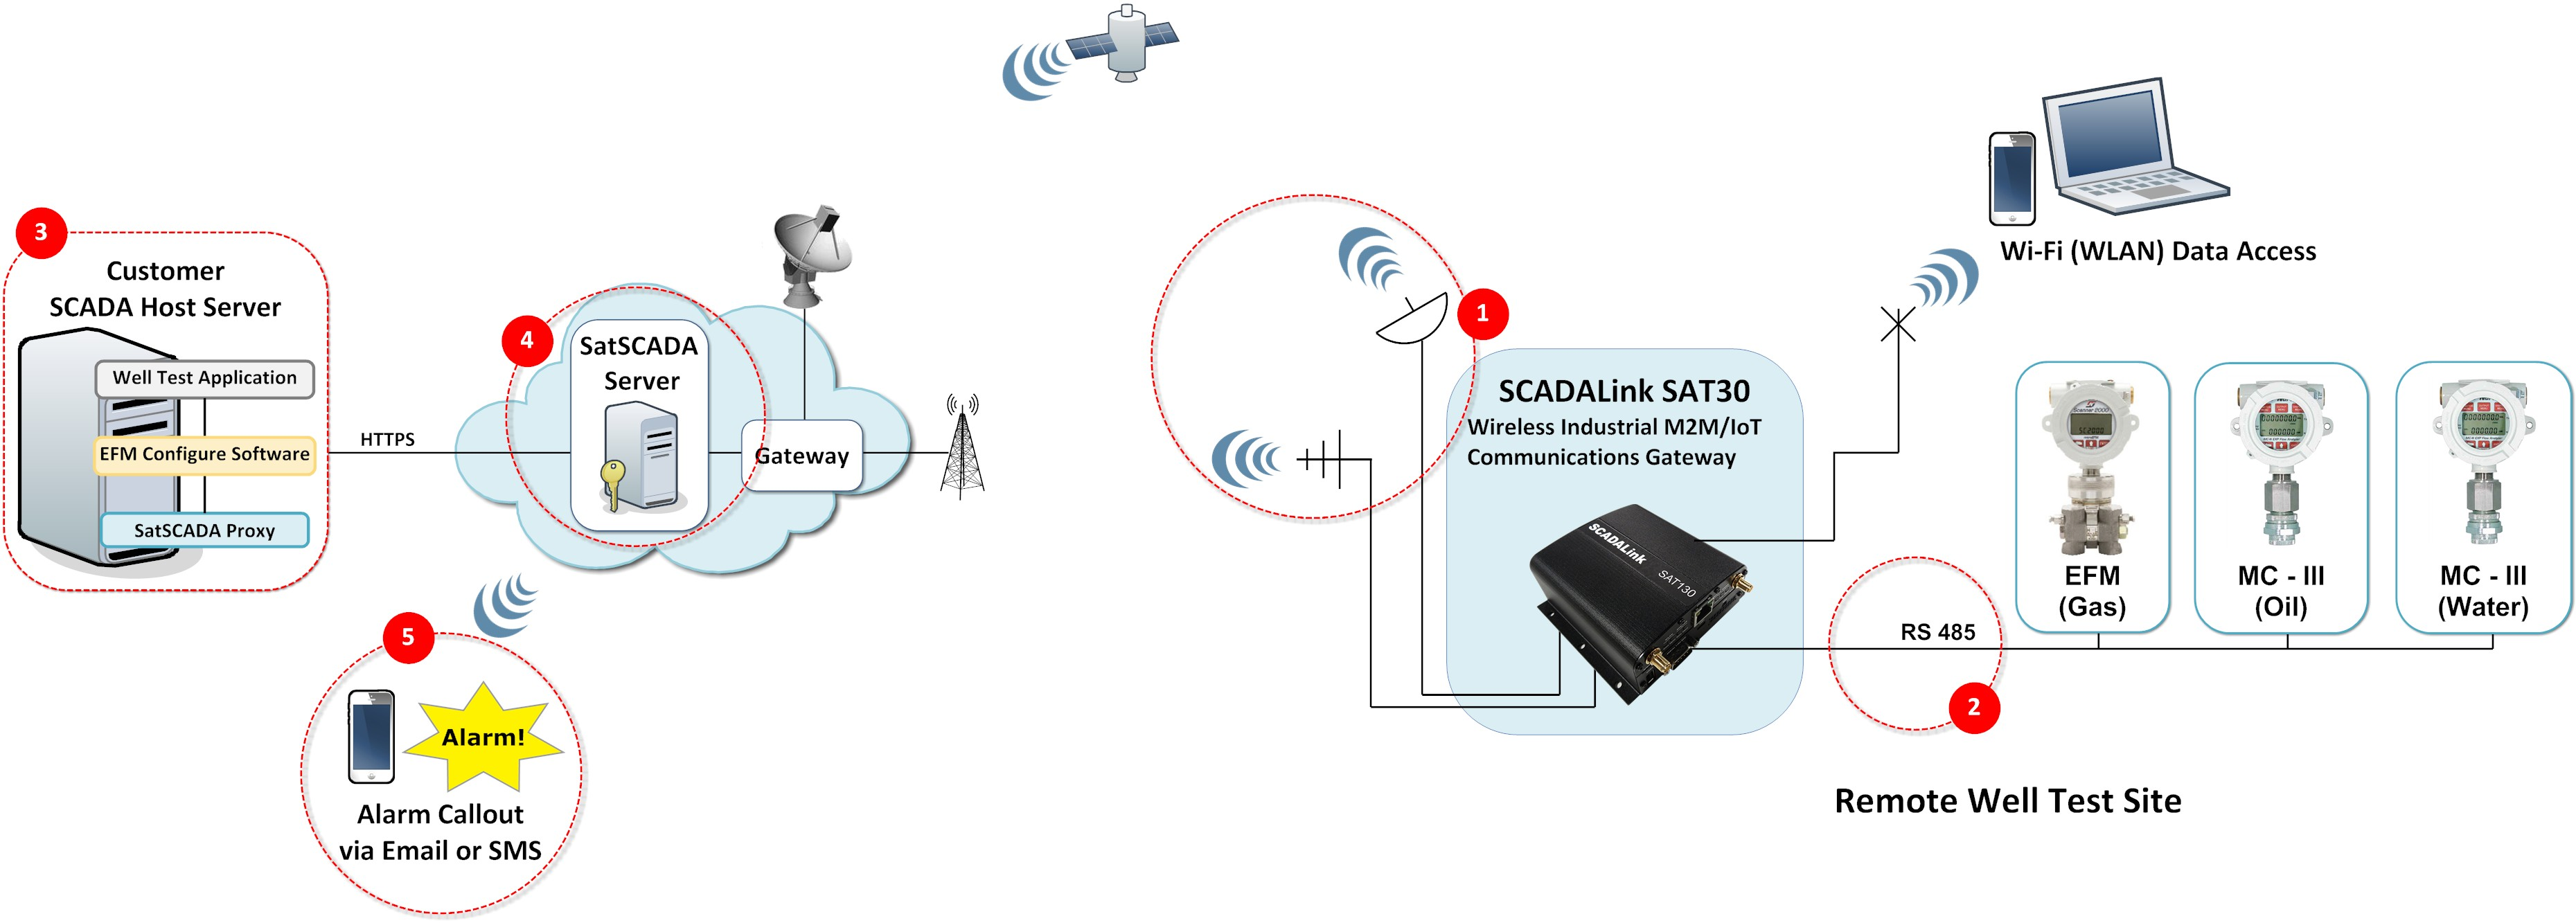 dual-mode-satellite-cellular-scada-communications-for-mobile-well-testing